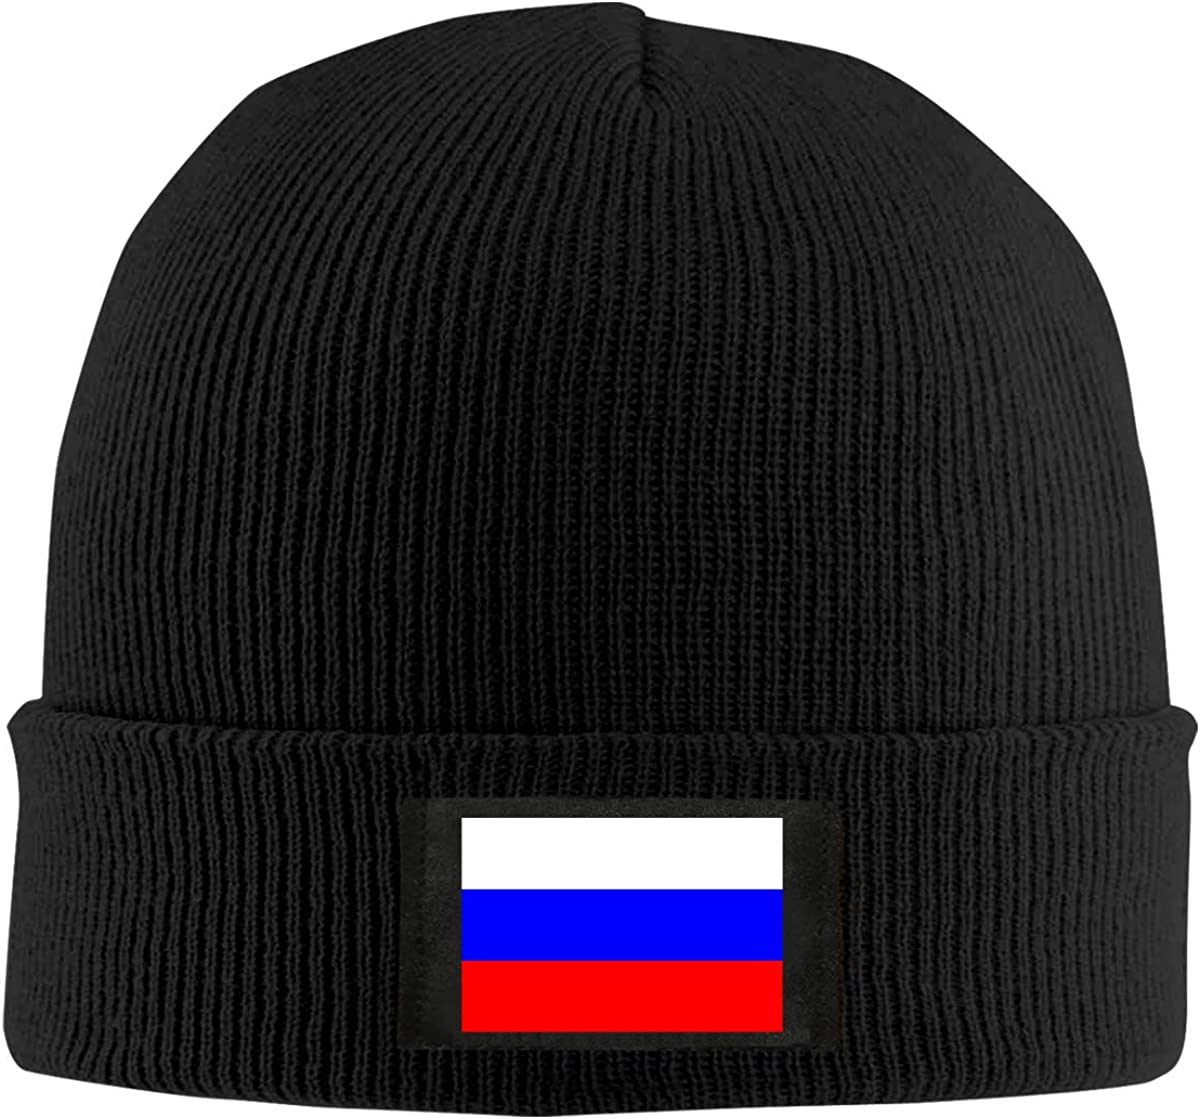 Xdinfong Russian Flag Winter Beanie Hat Knit Skull Cap for Men /& Women